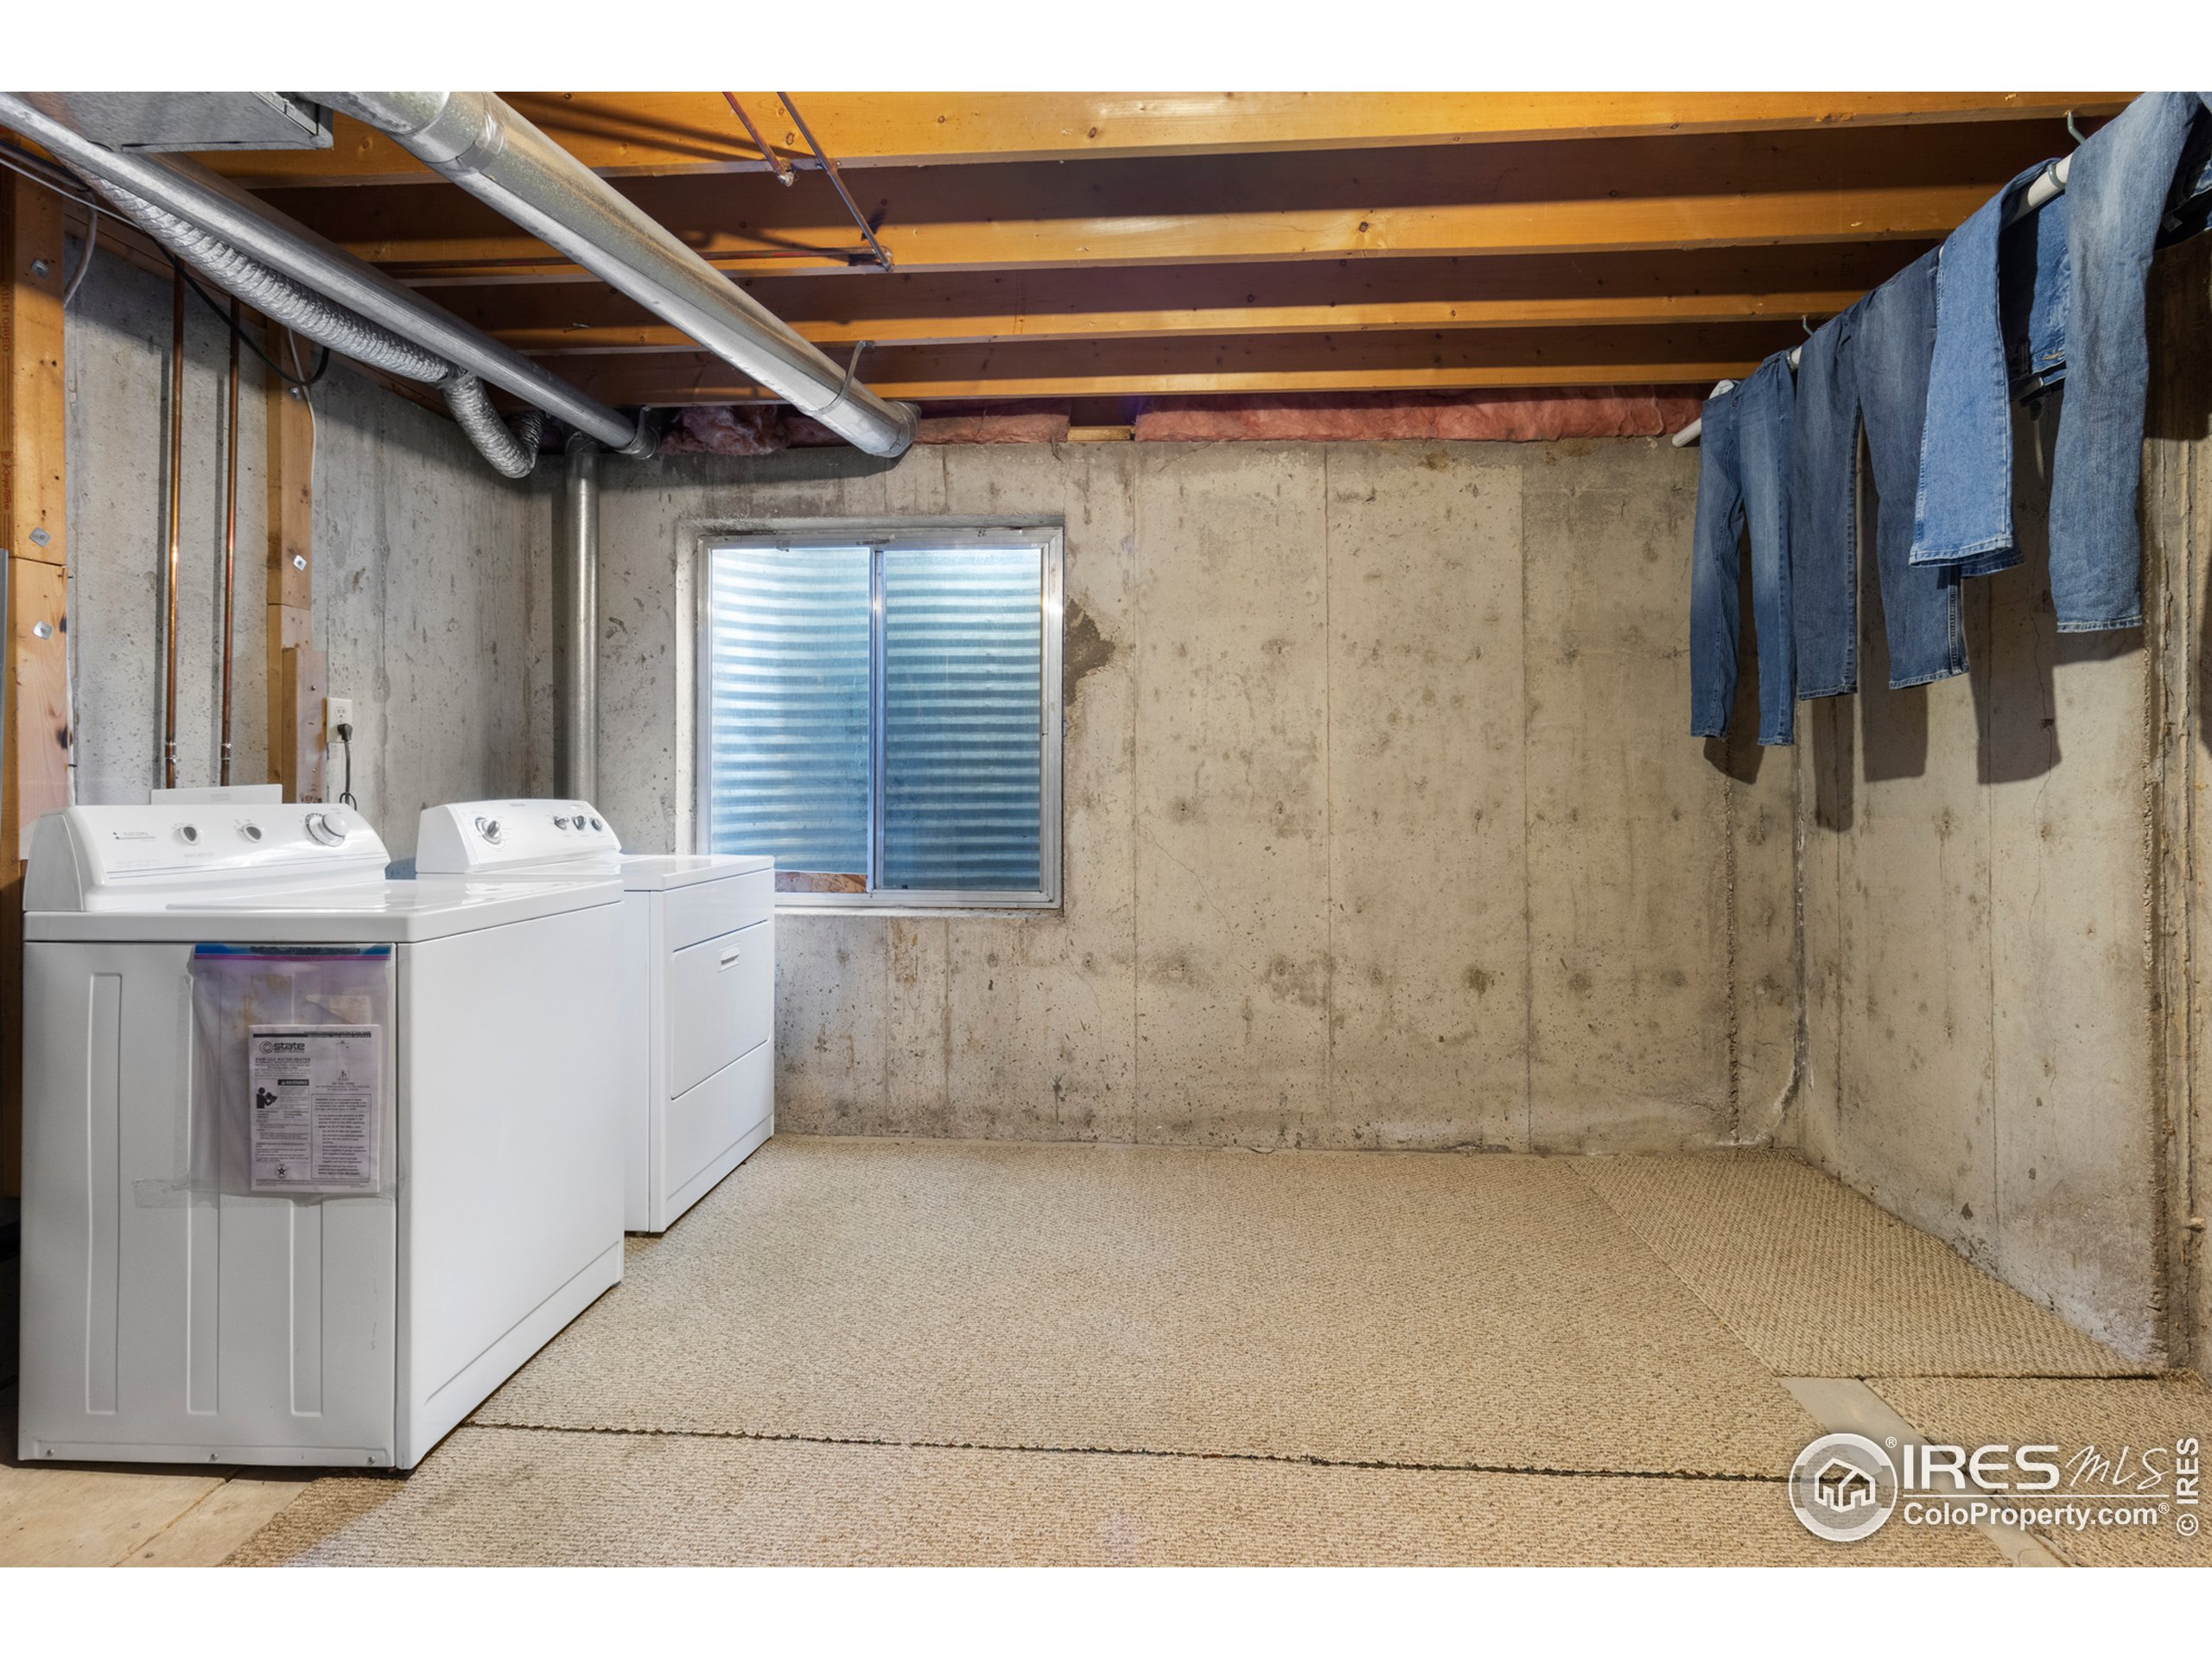 Laundry located in unfinished basement. Basement includes a rough-in and enough space for an additional room.